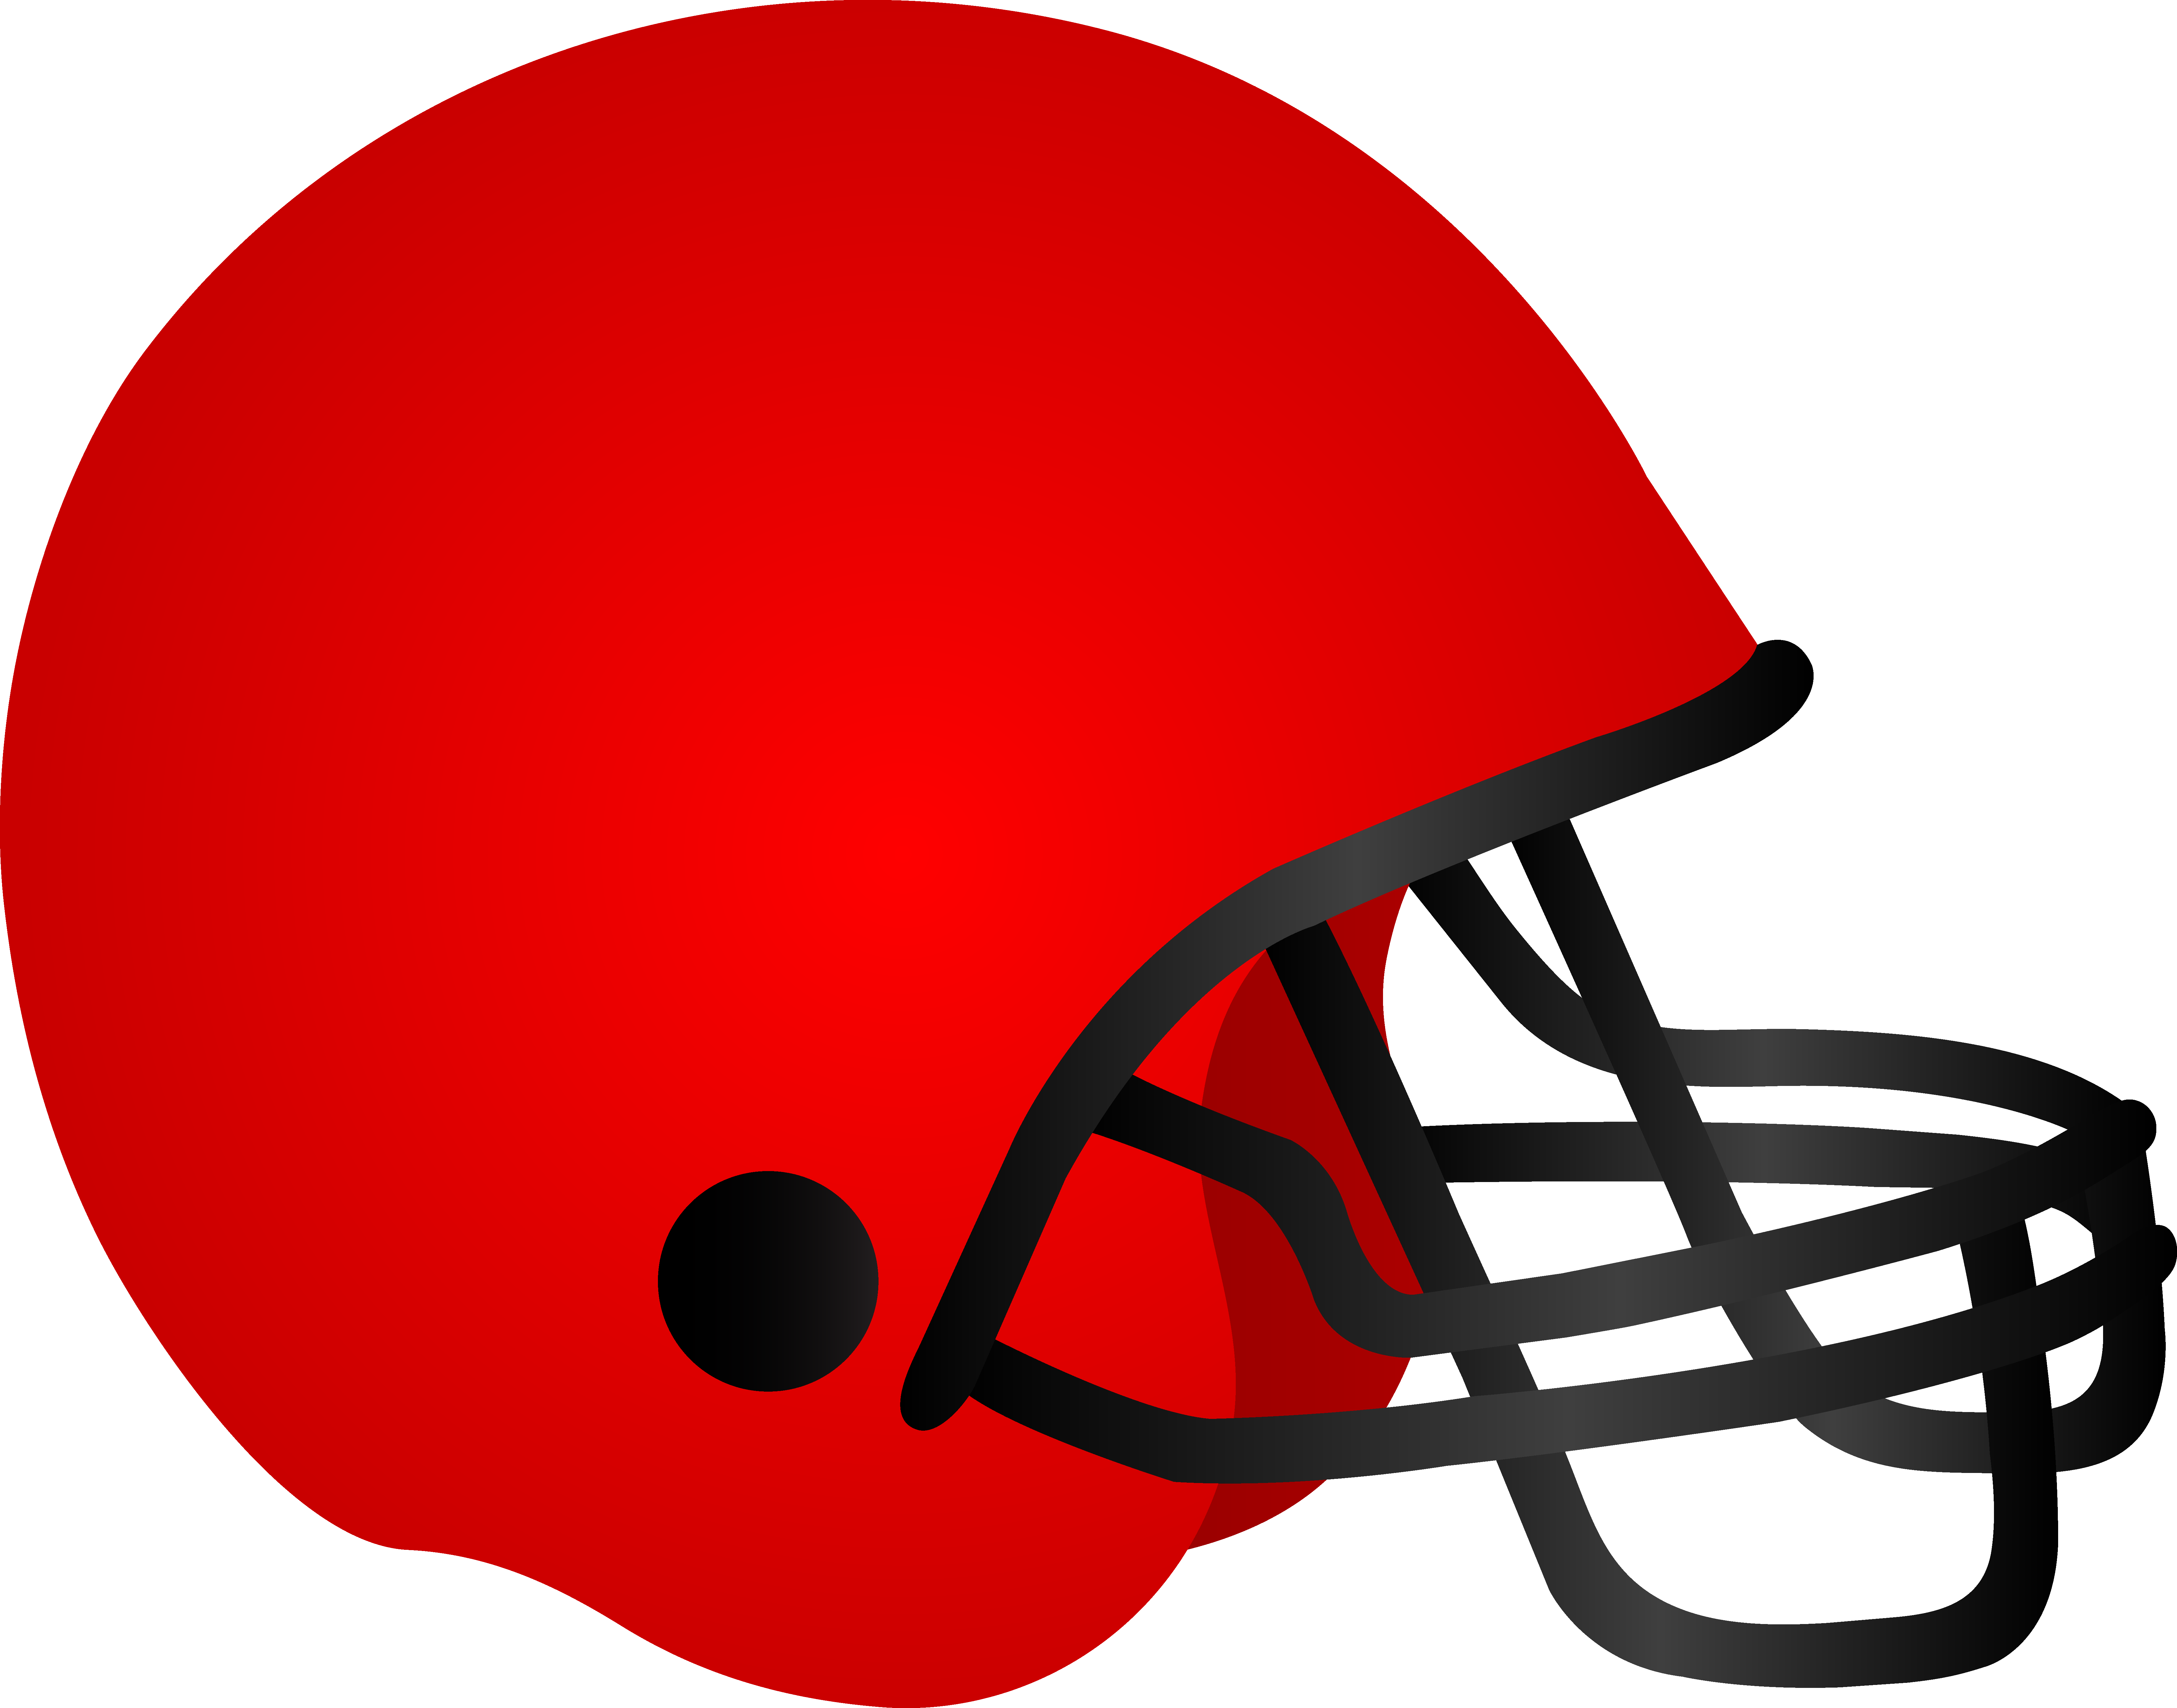 Jersey clipart football stands.  collection of free